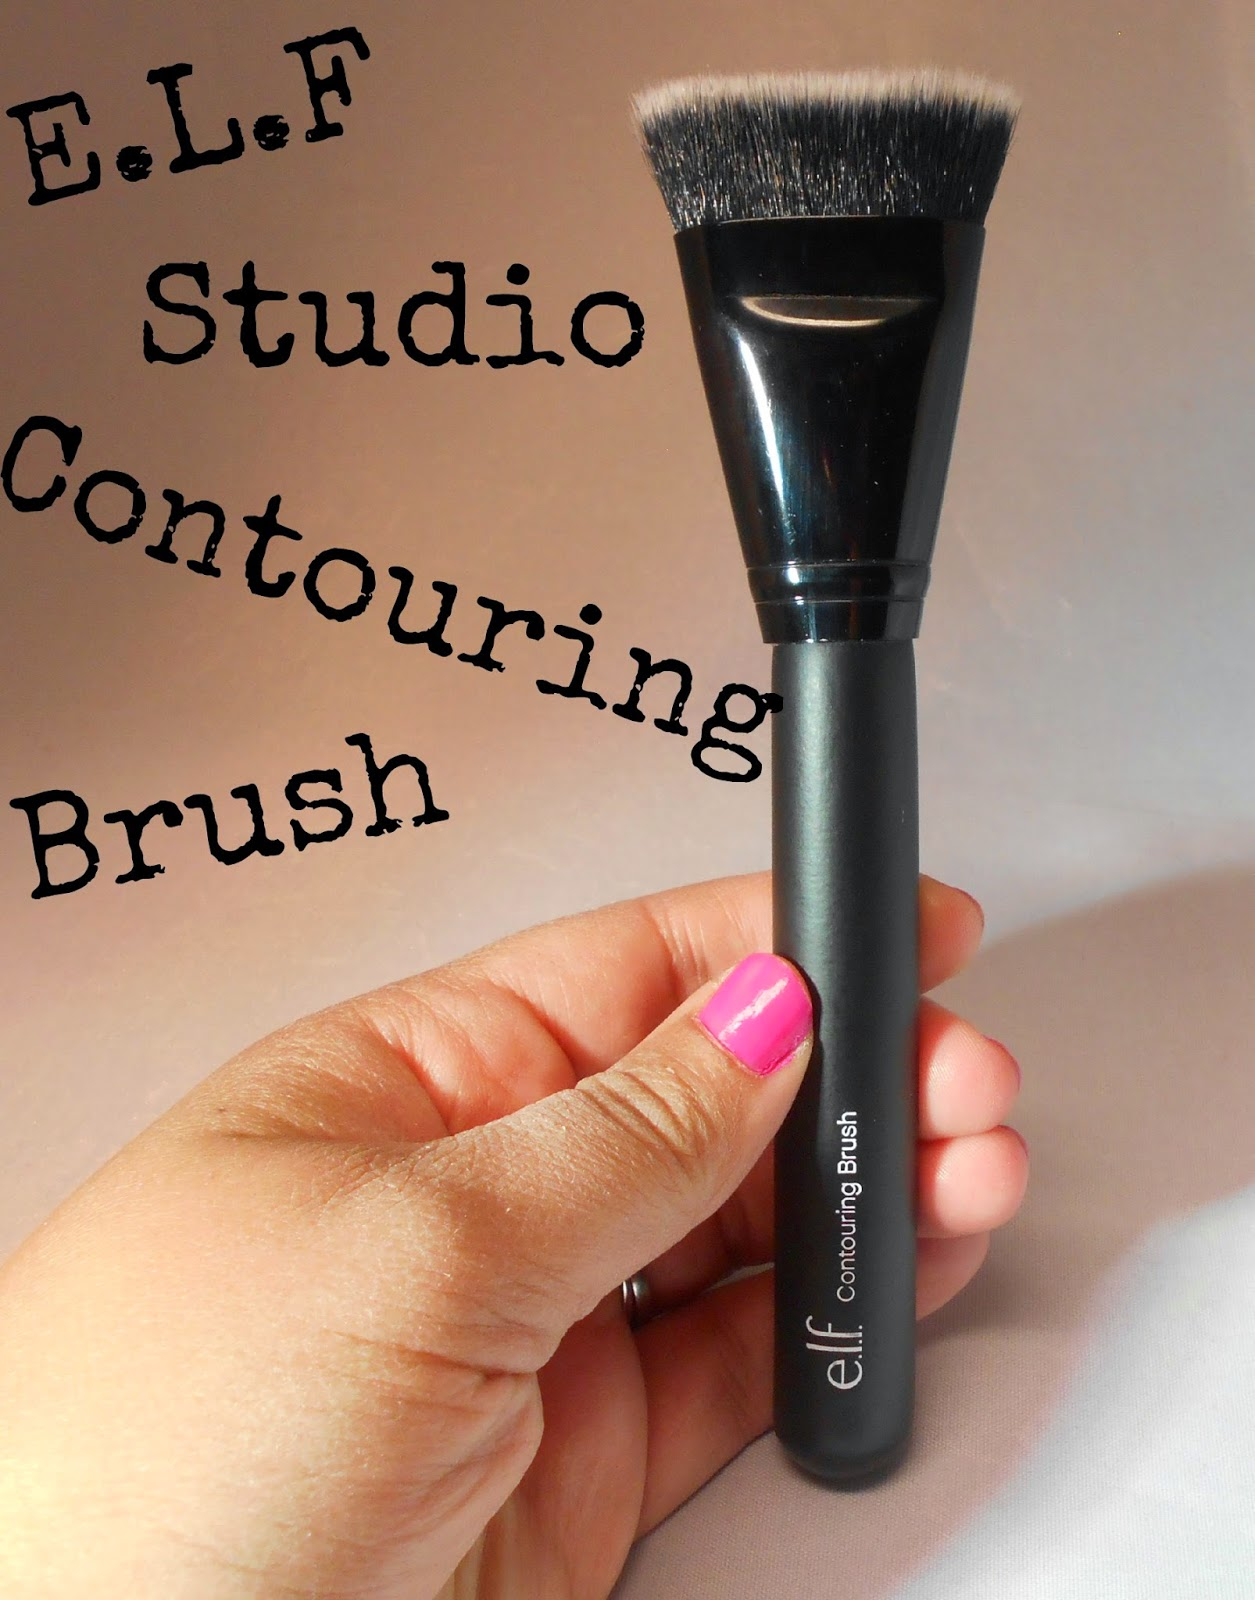 Contouring Brush by e.l.f. #8